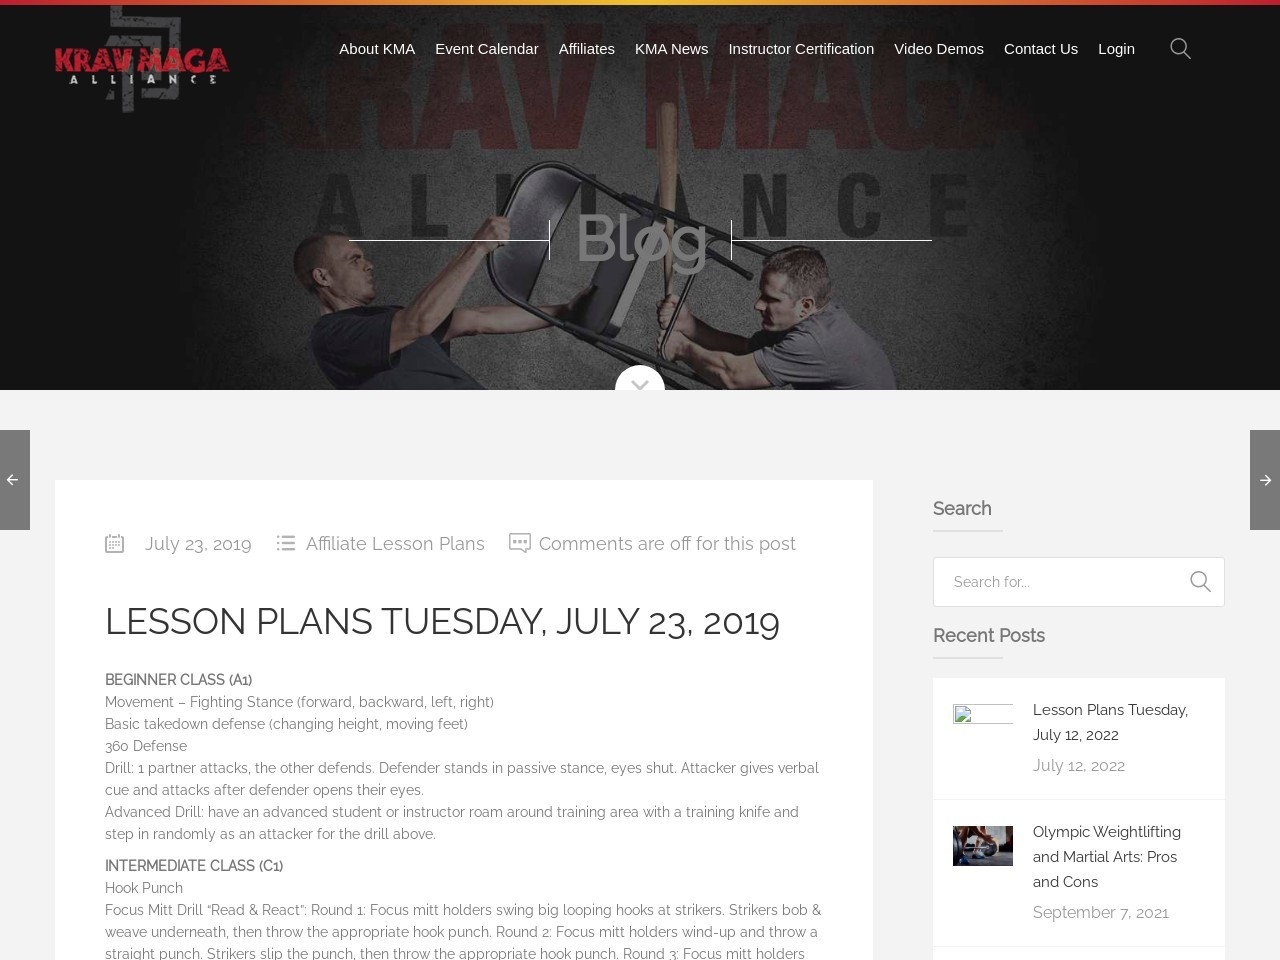 Lesson Plans Tuesday, July 23, 2019